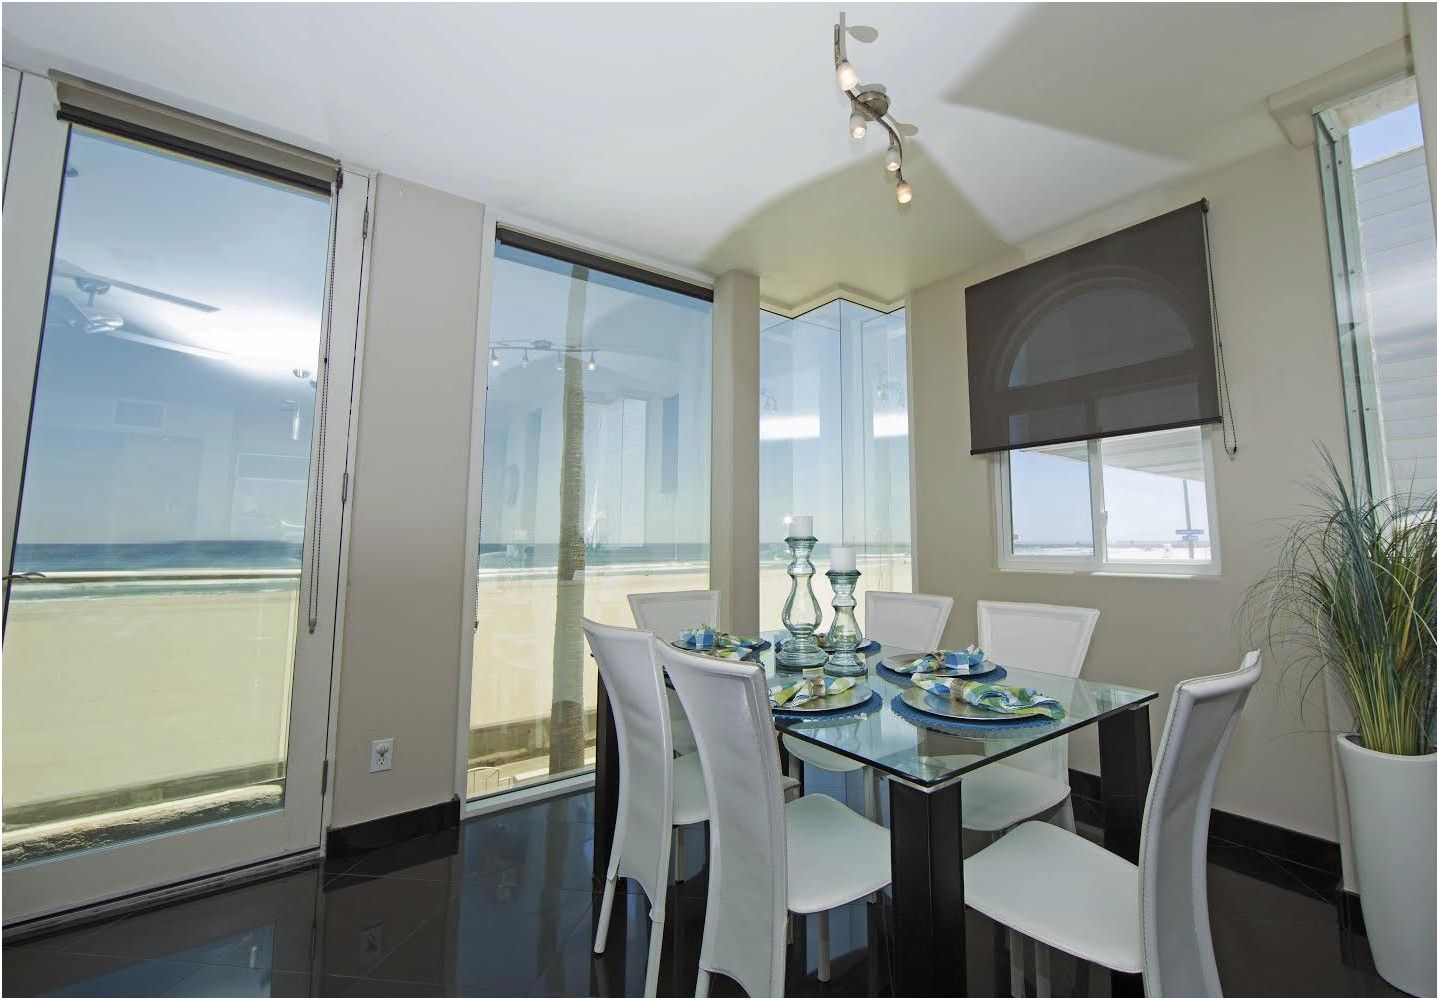 San Go Vacation Als Mission Beach House From Ing A In California